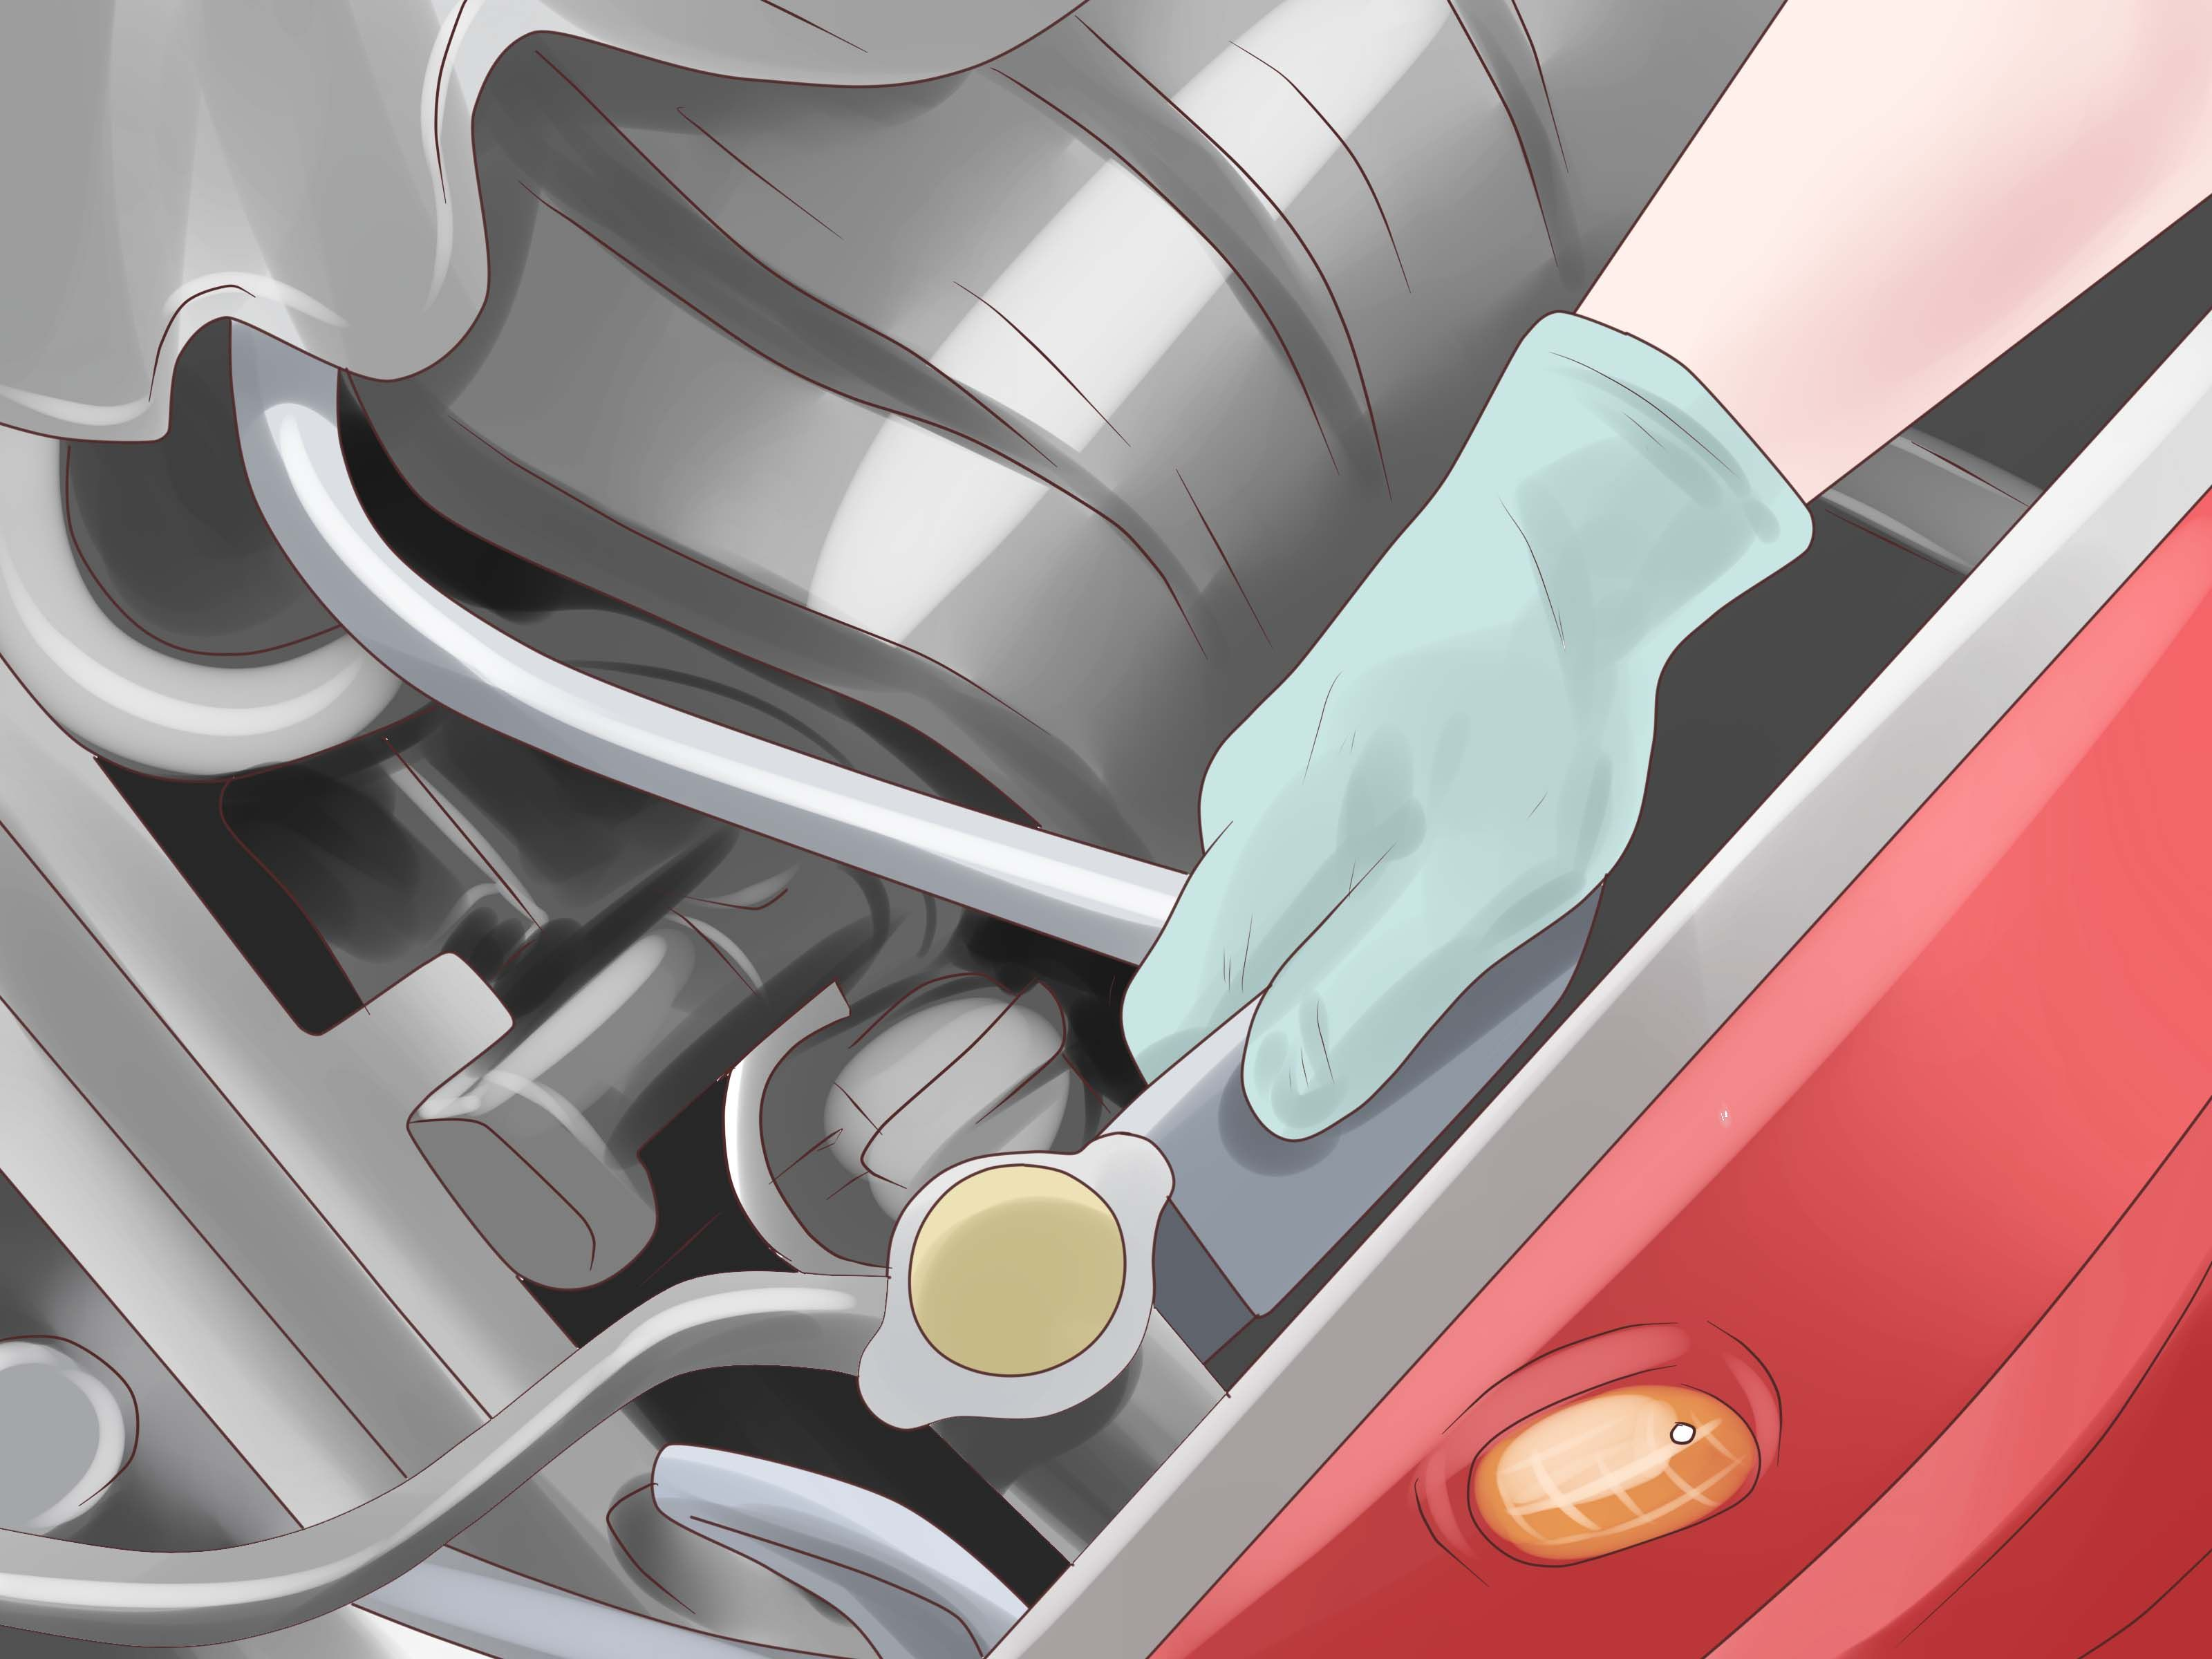 How To Tell If Your Car S Thermostat Is Stuck Closed Thermostat Stick Cars